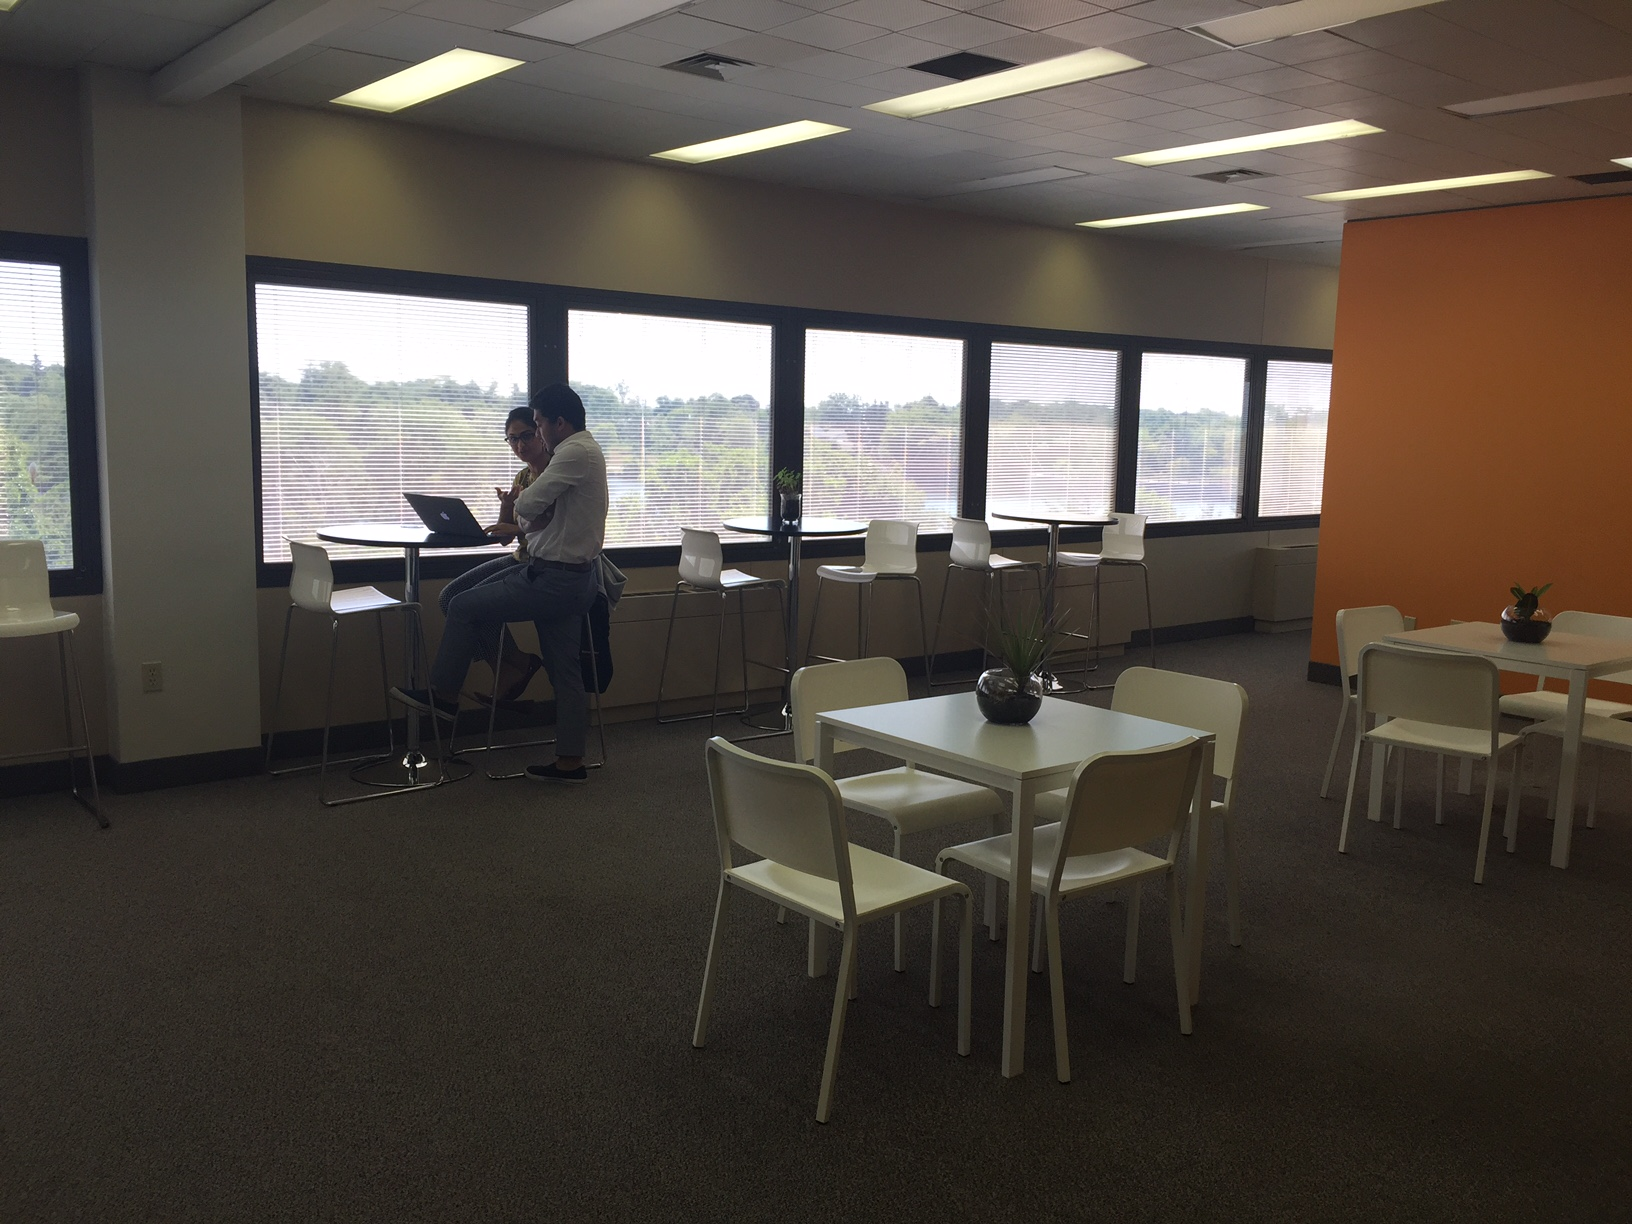 creative spaces Overlooking the otonabee River (photo courtesy innovation cluster)